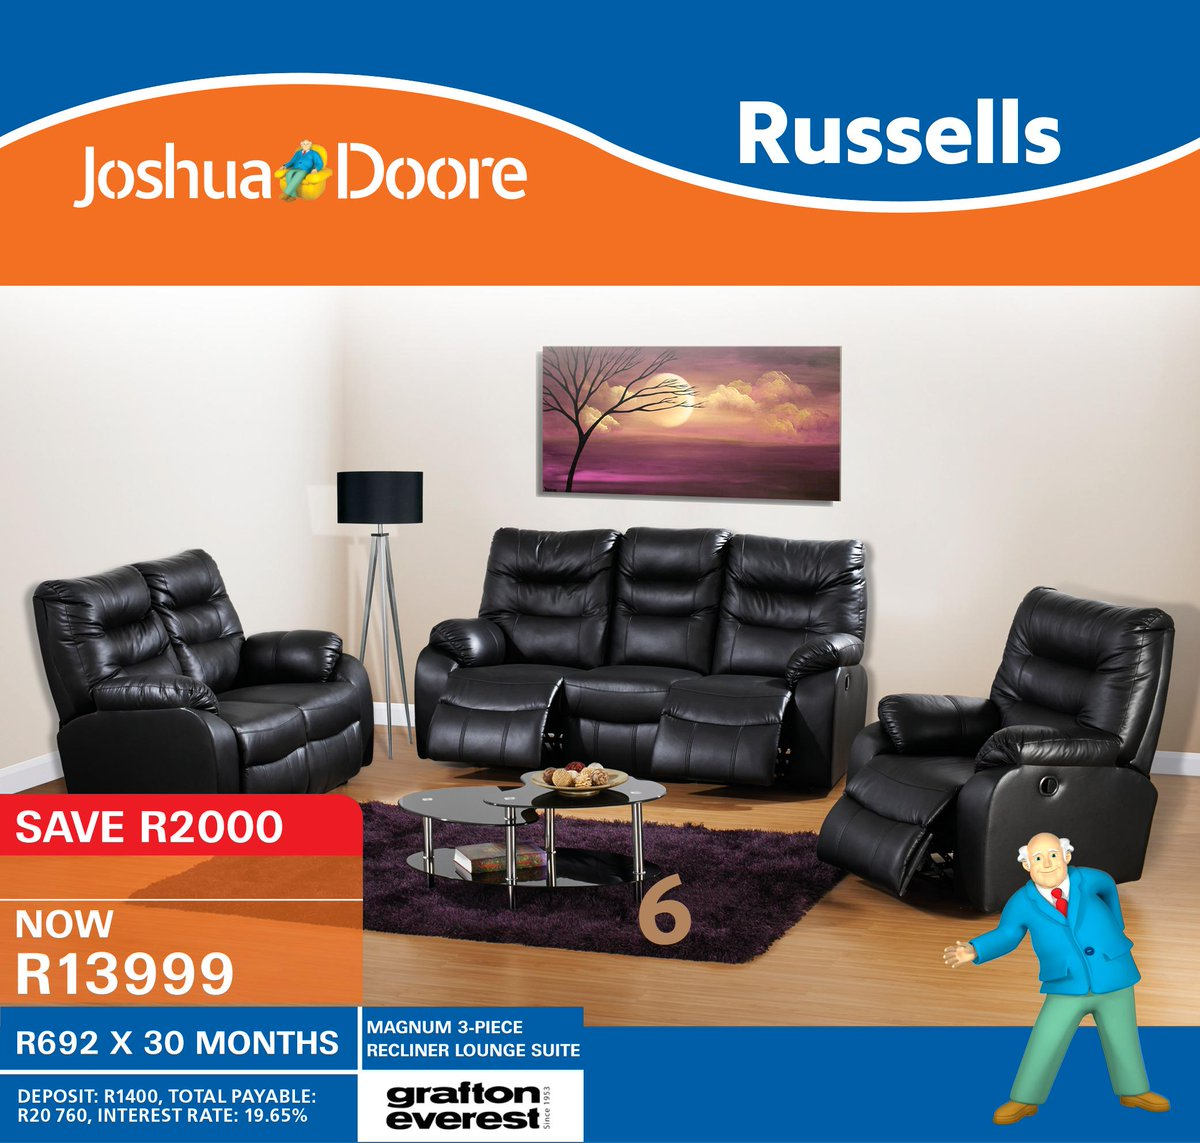 Joshua Doore On Twitter SAVE R2000 When You Purchase This Beautiful MAGNUM 3 PIECE RECLINER LOUNGE SUITE Limited Stock Available Tco EXlELSDHWC